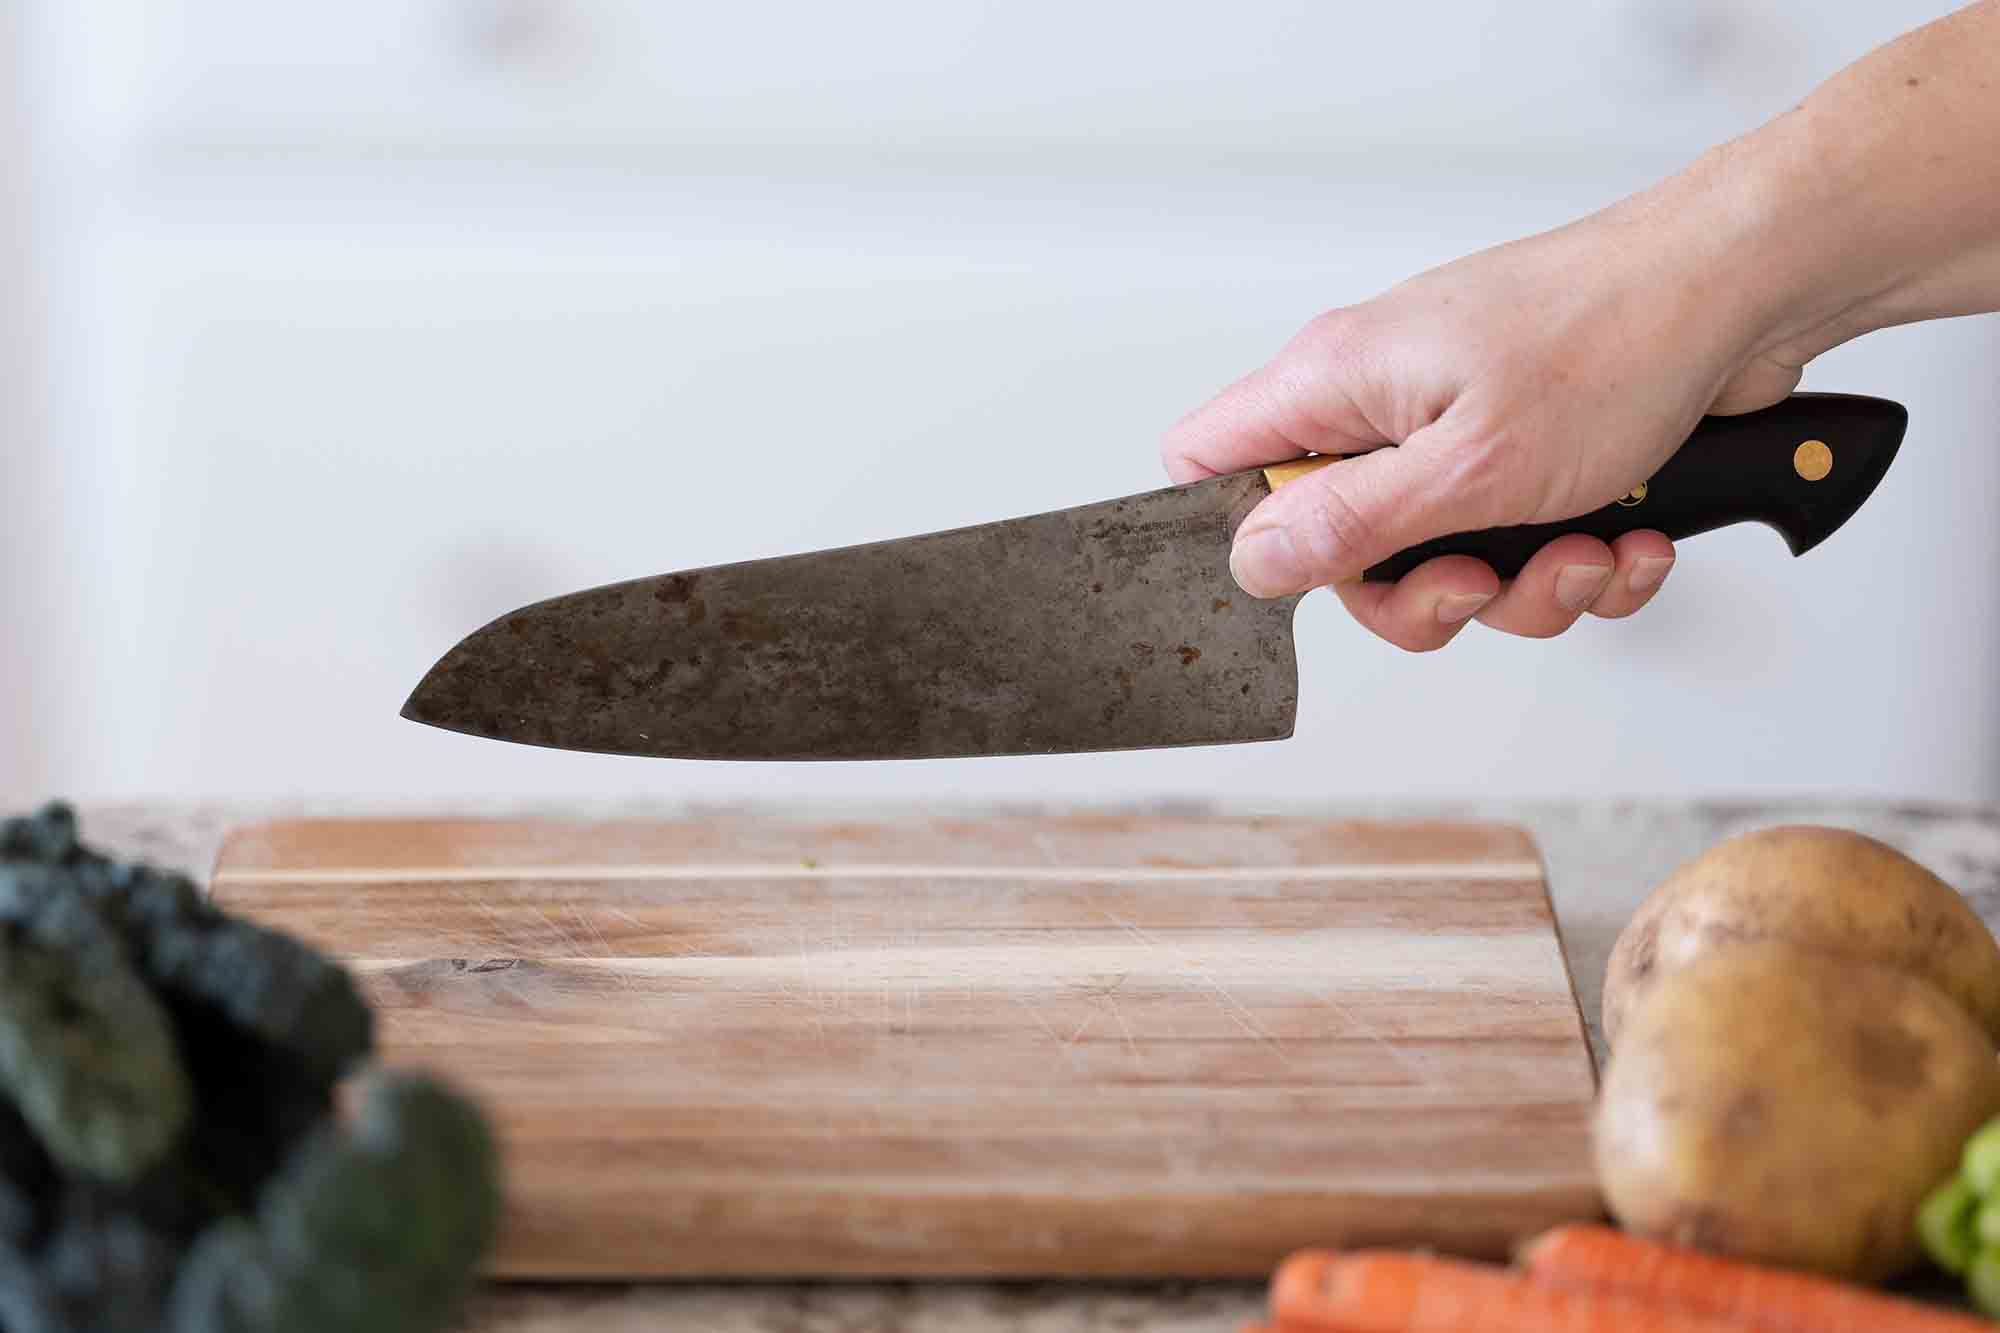 The Blade Grip for a Chef's Knife